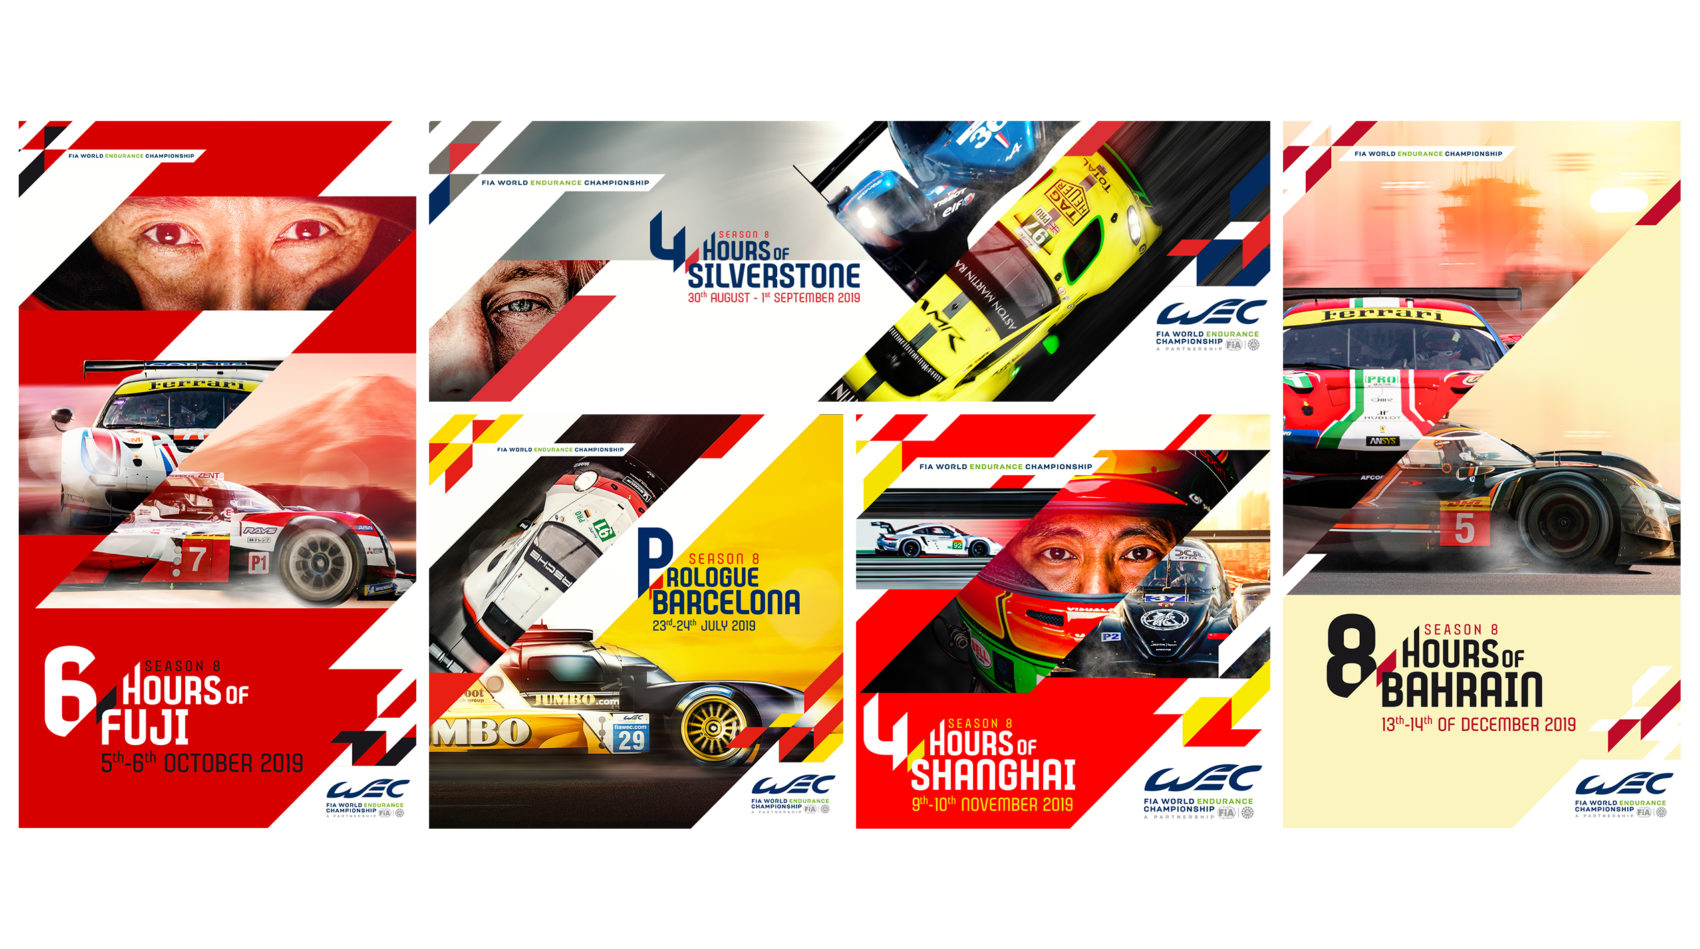 Projet_Project_WEC_FIA_world_endurance_championship_RS_social_network_3